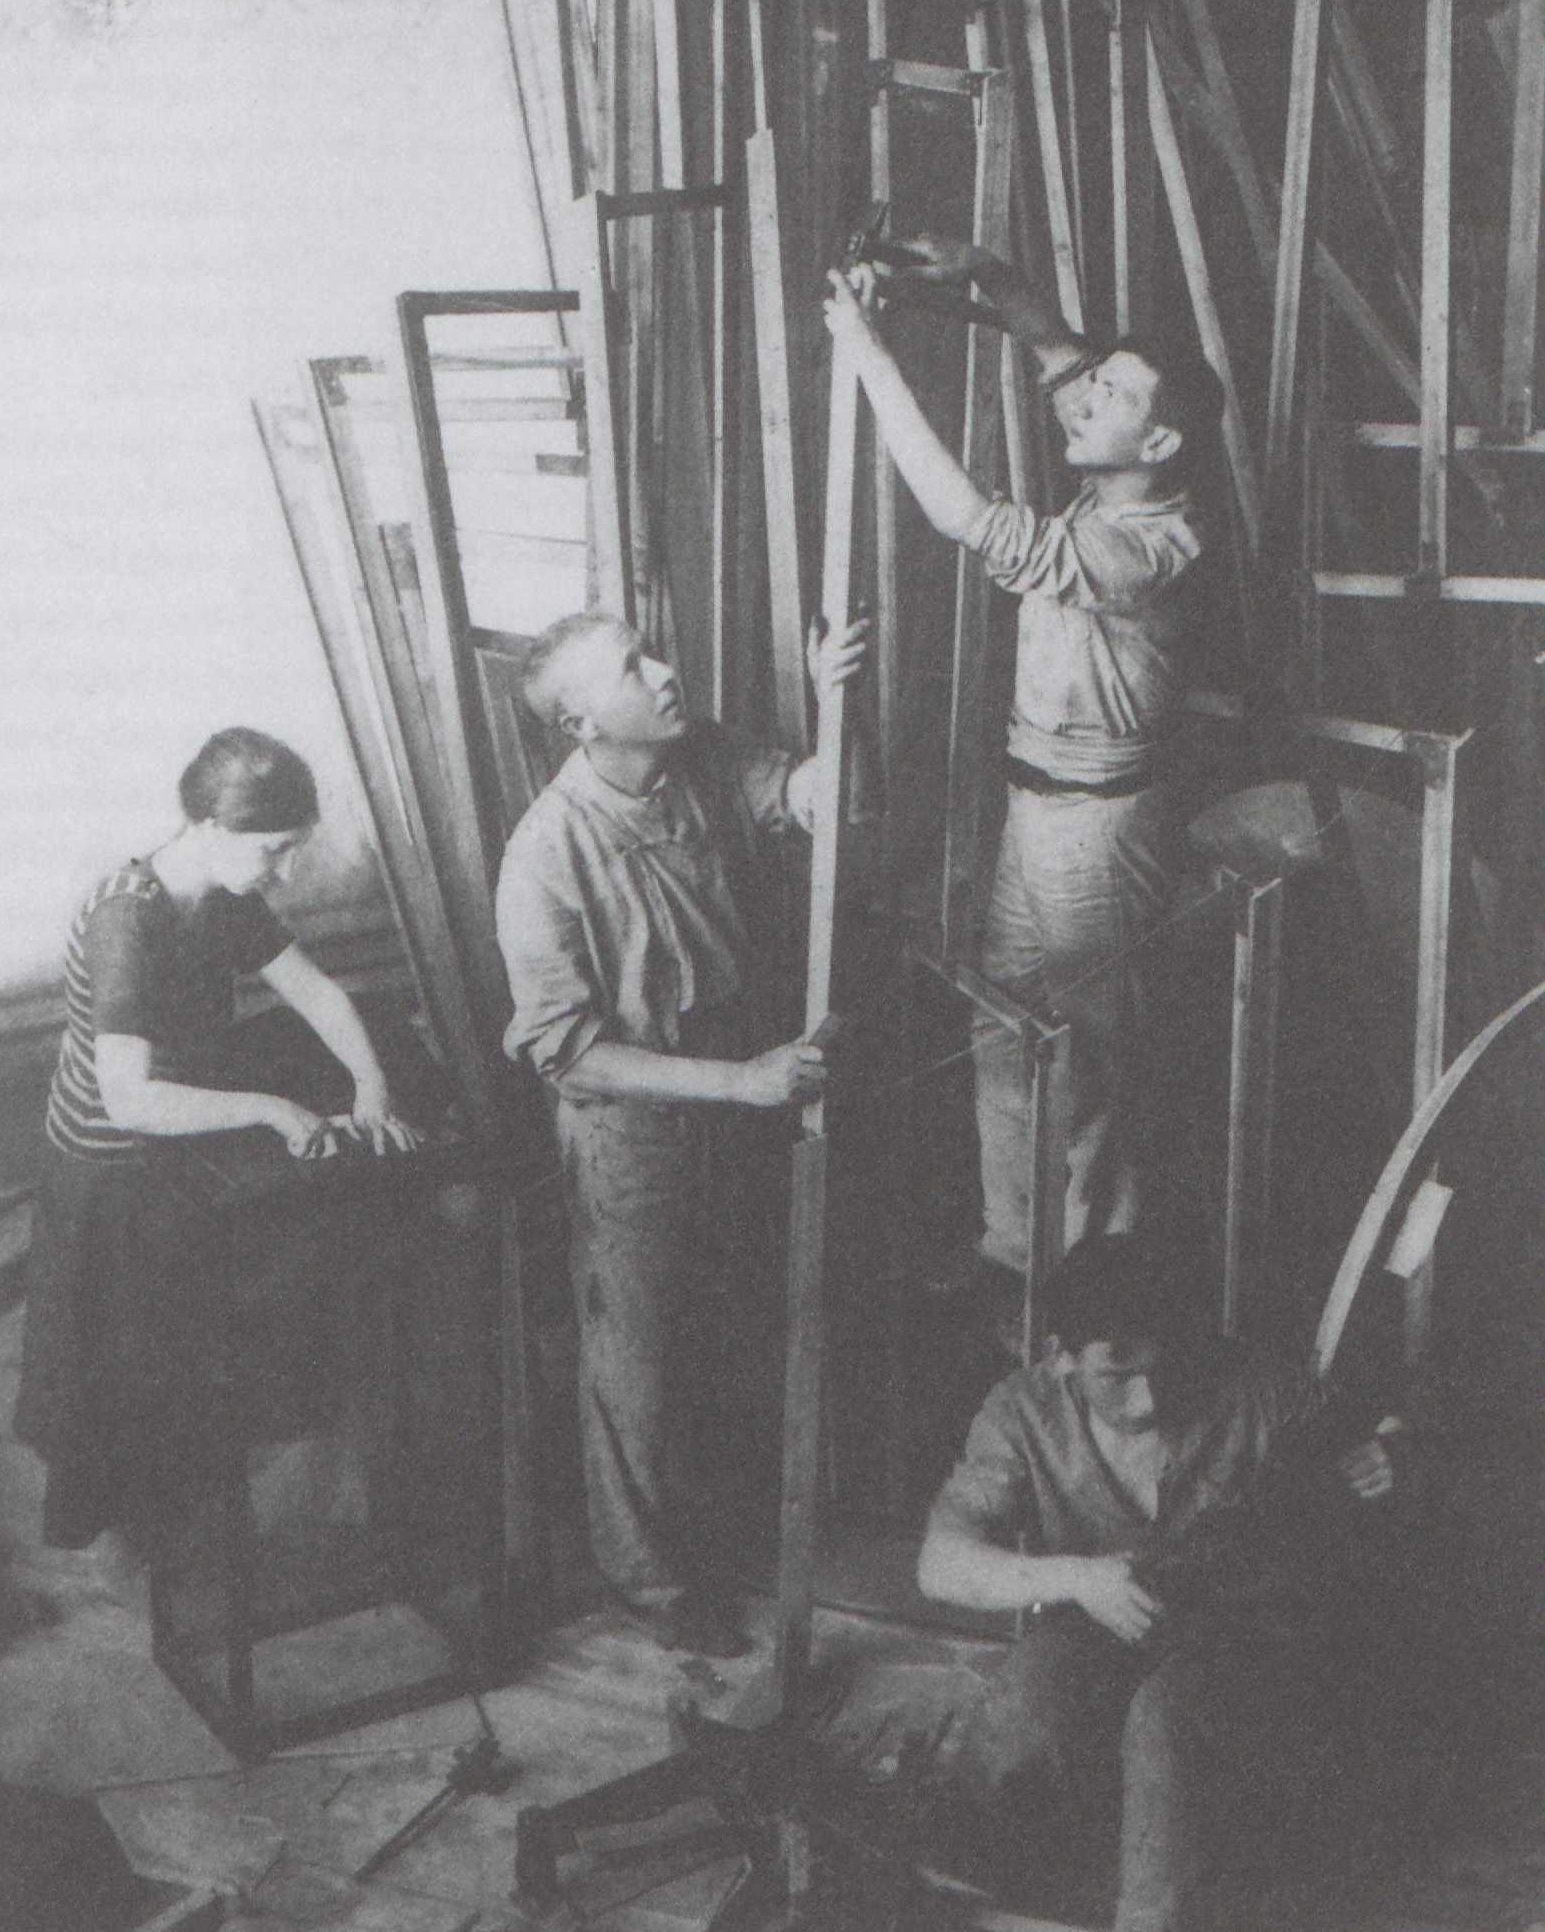 Tatlin working with his assistants to build the first model of the  Monument to the Third International , Petrograd, Soviet Union, 1920